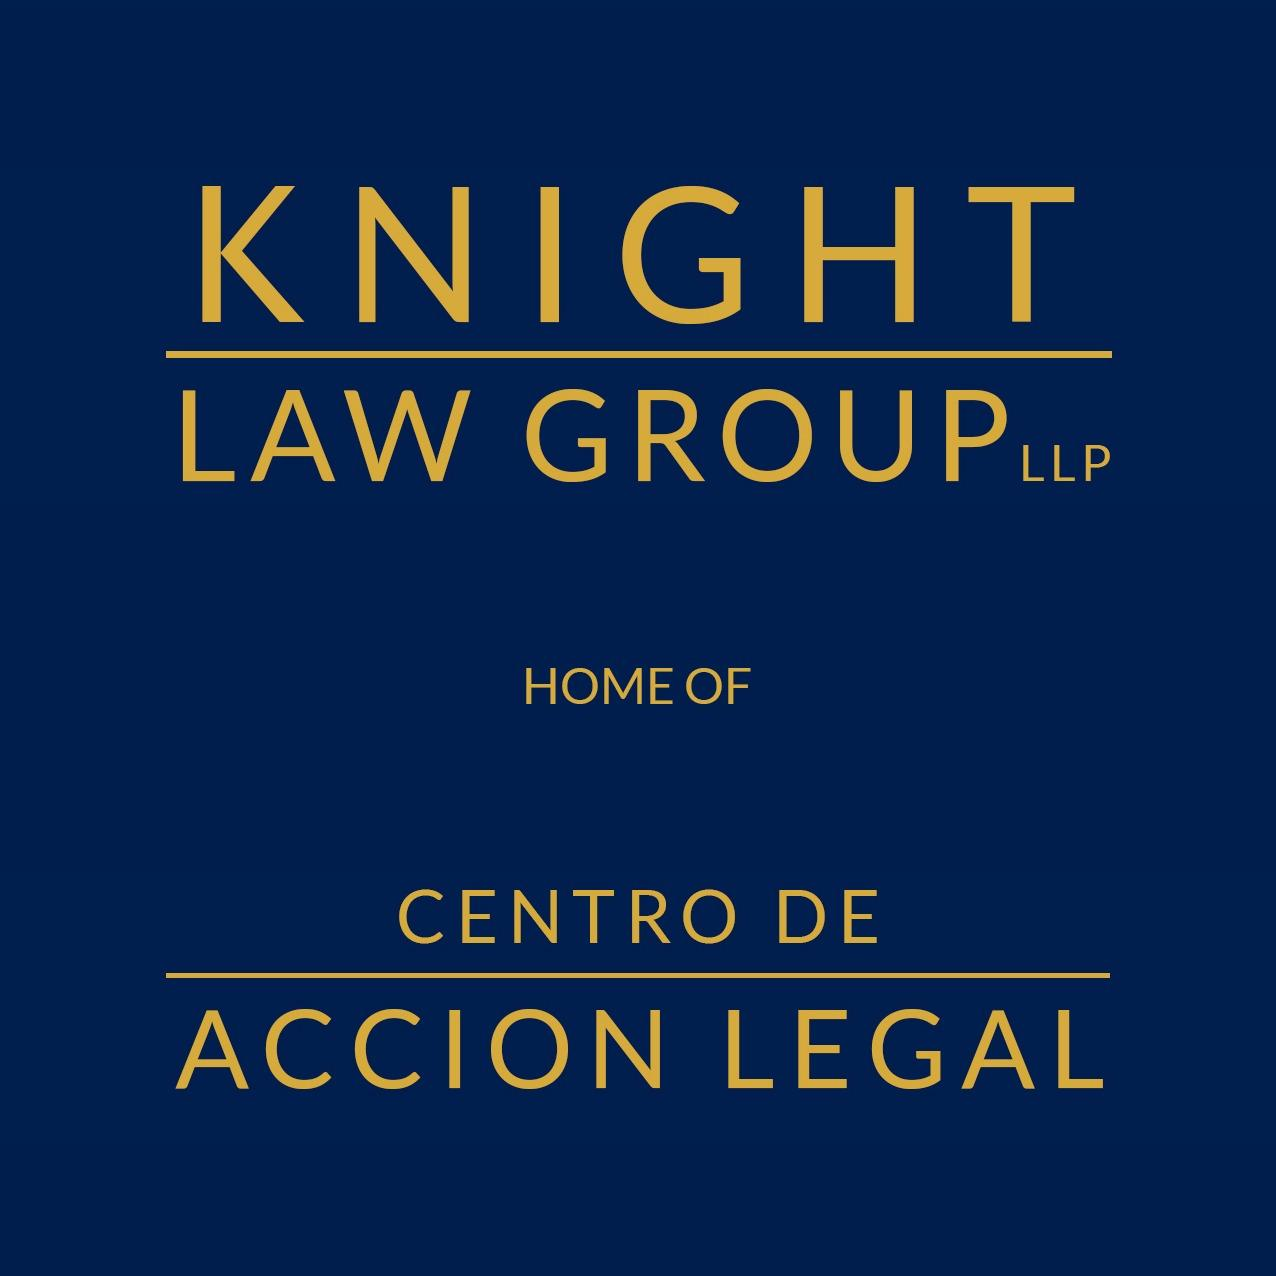 Knight Law Group, LLP